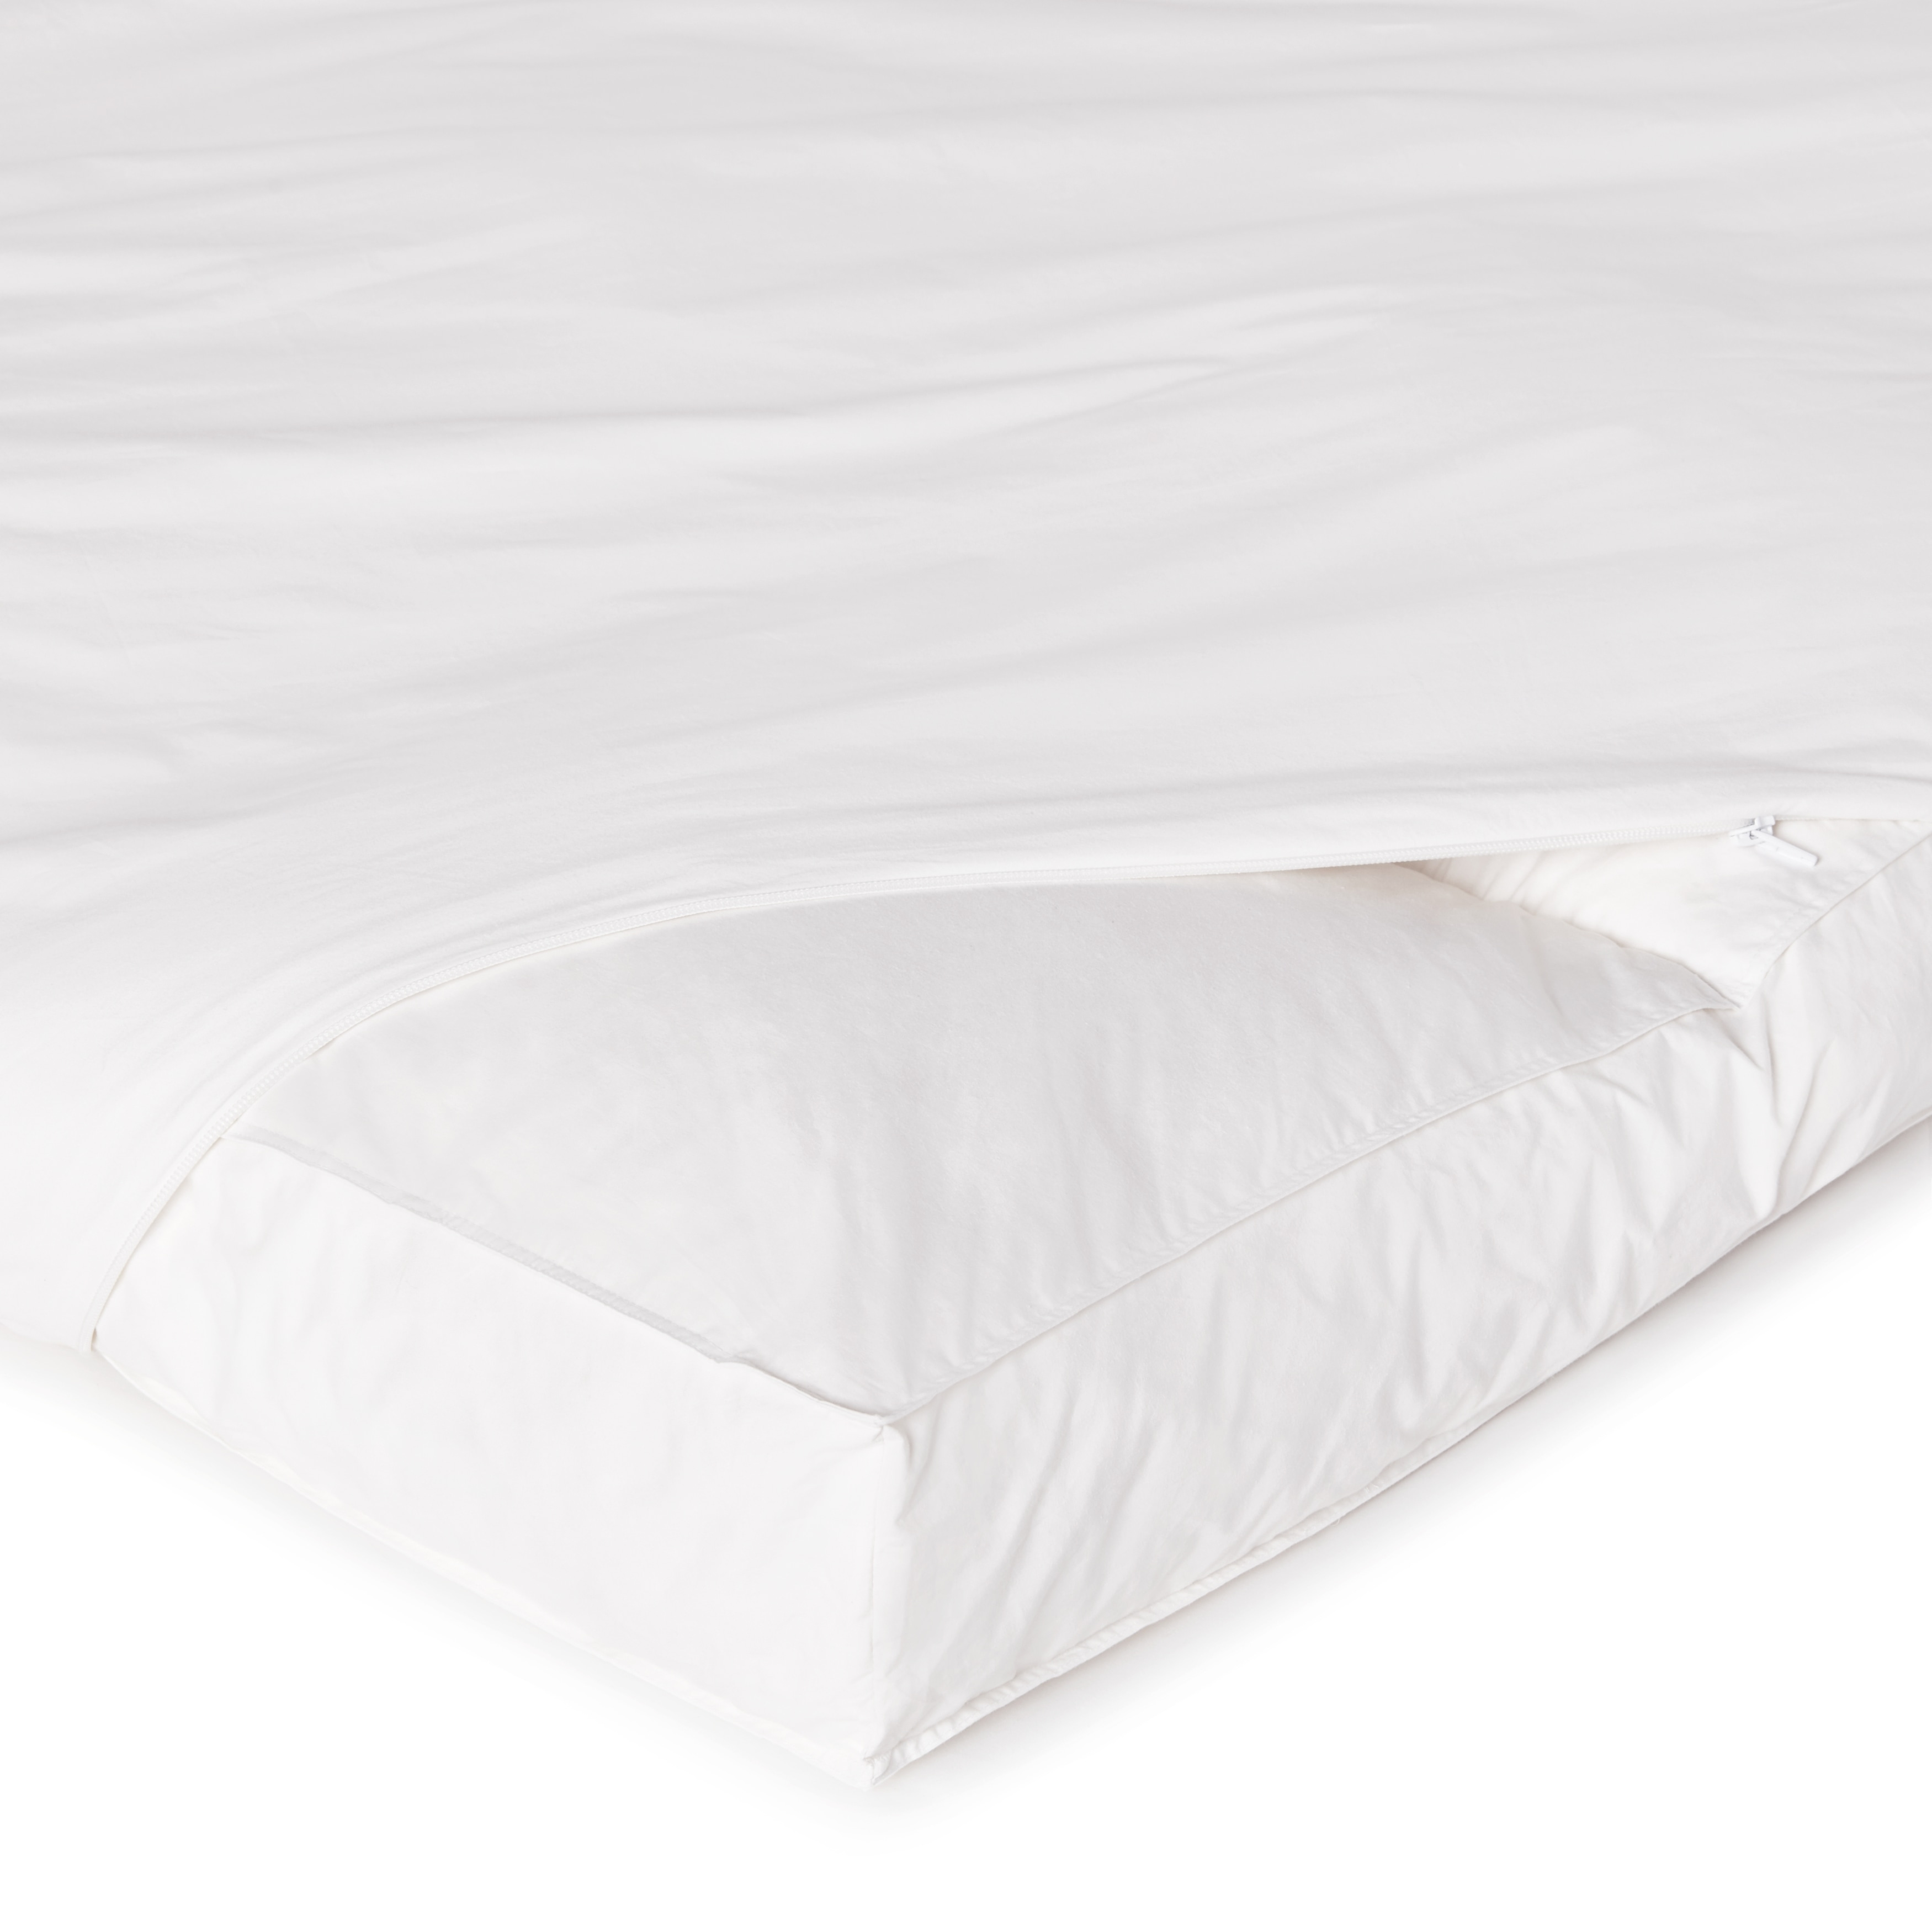 super snooze 5 inch 230 thread count baffled featherbed set free